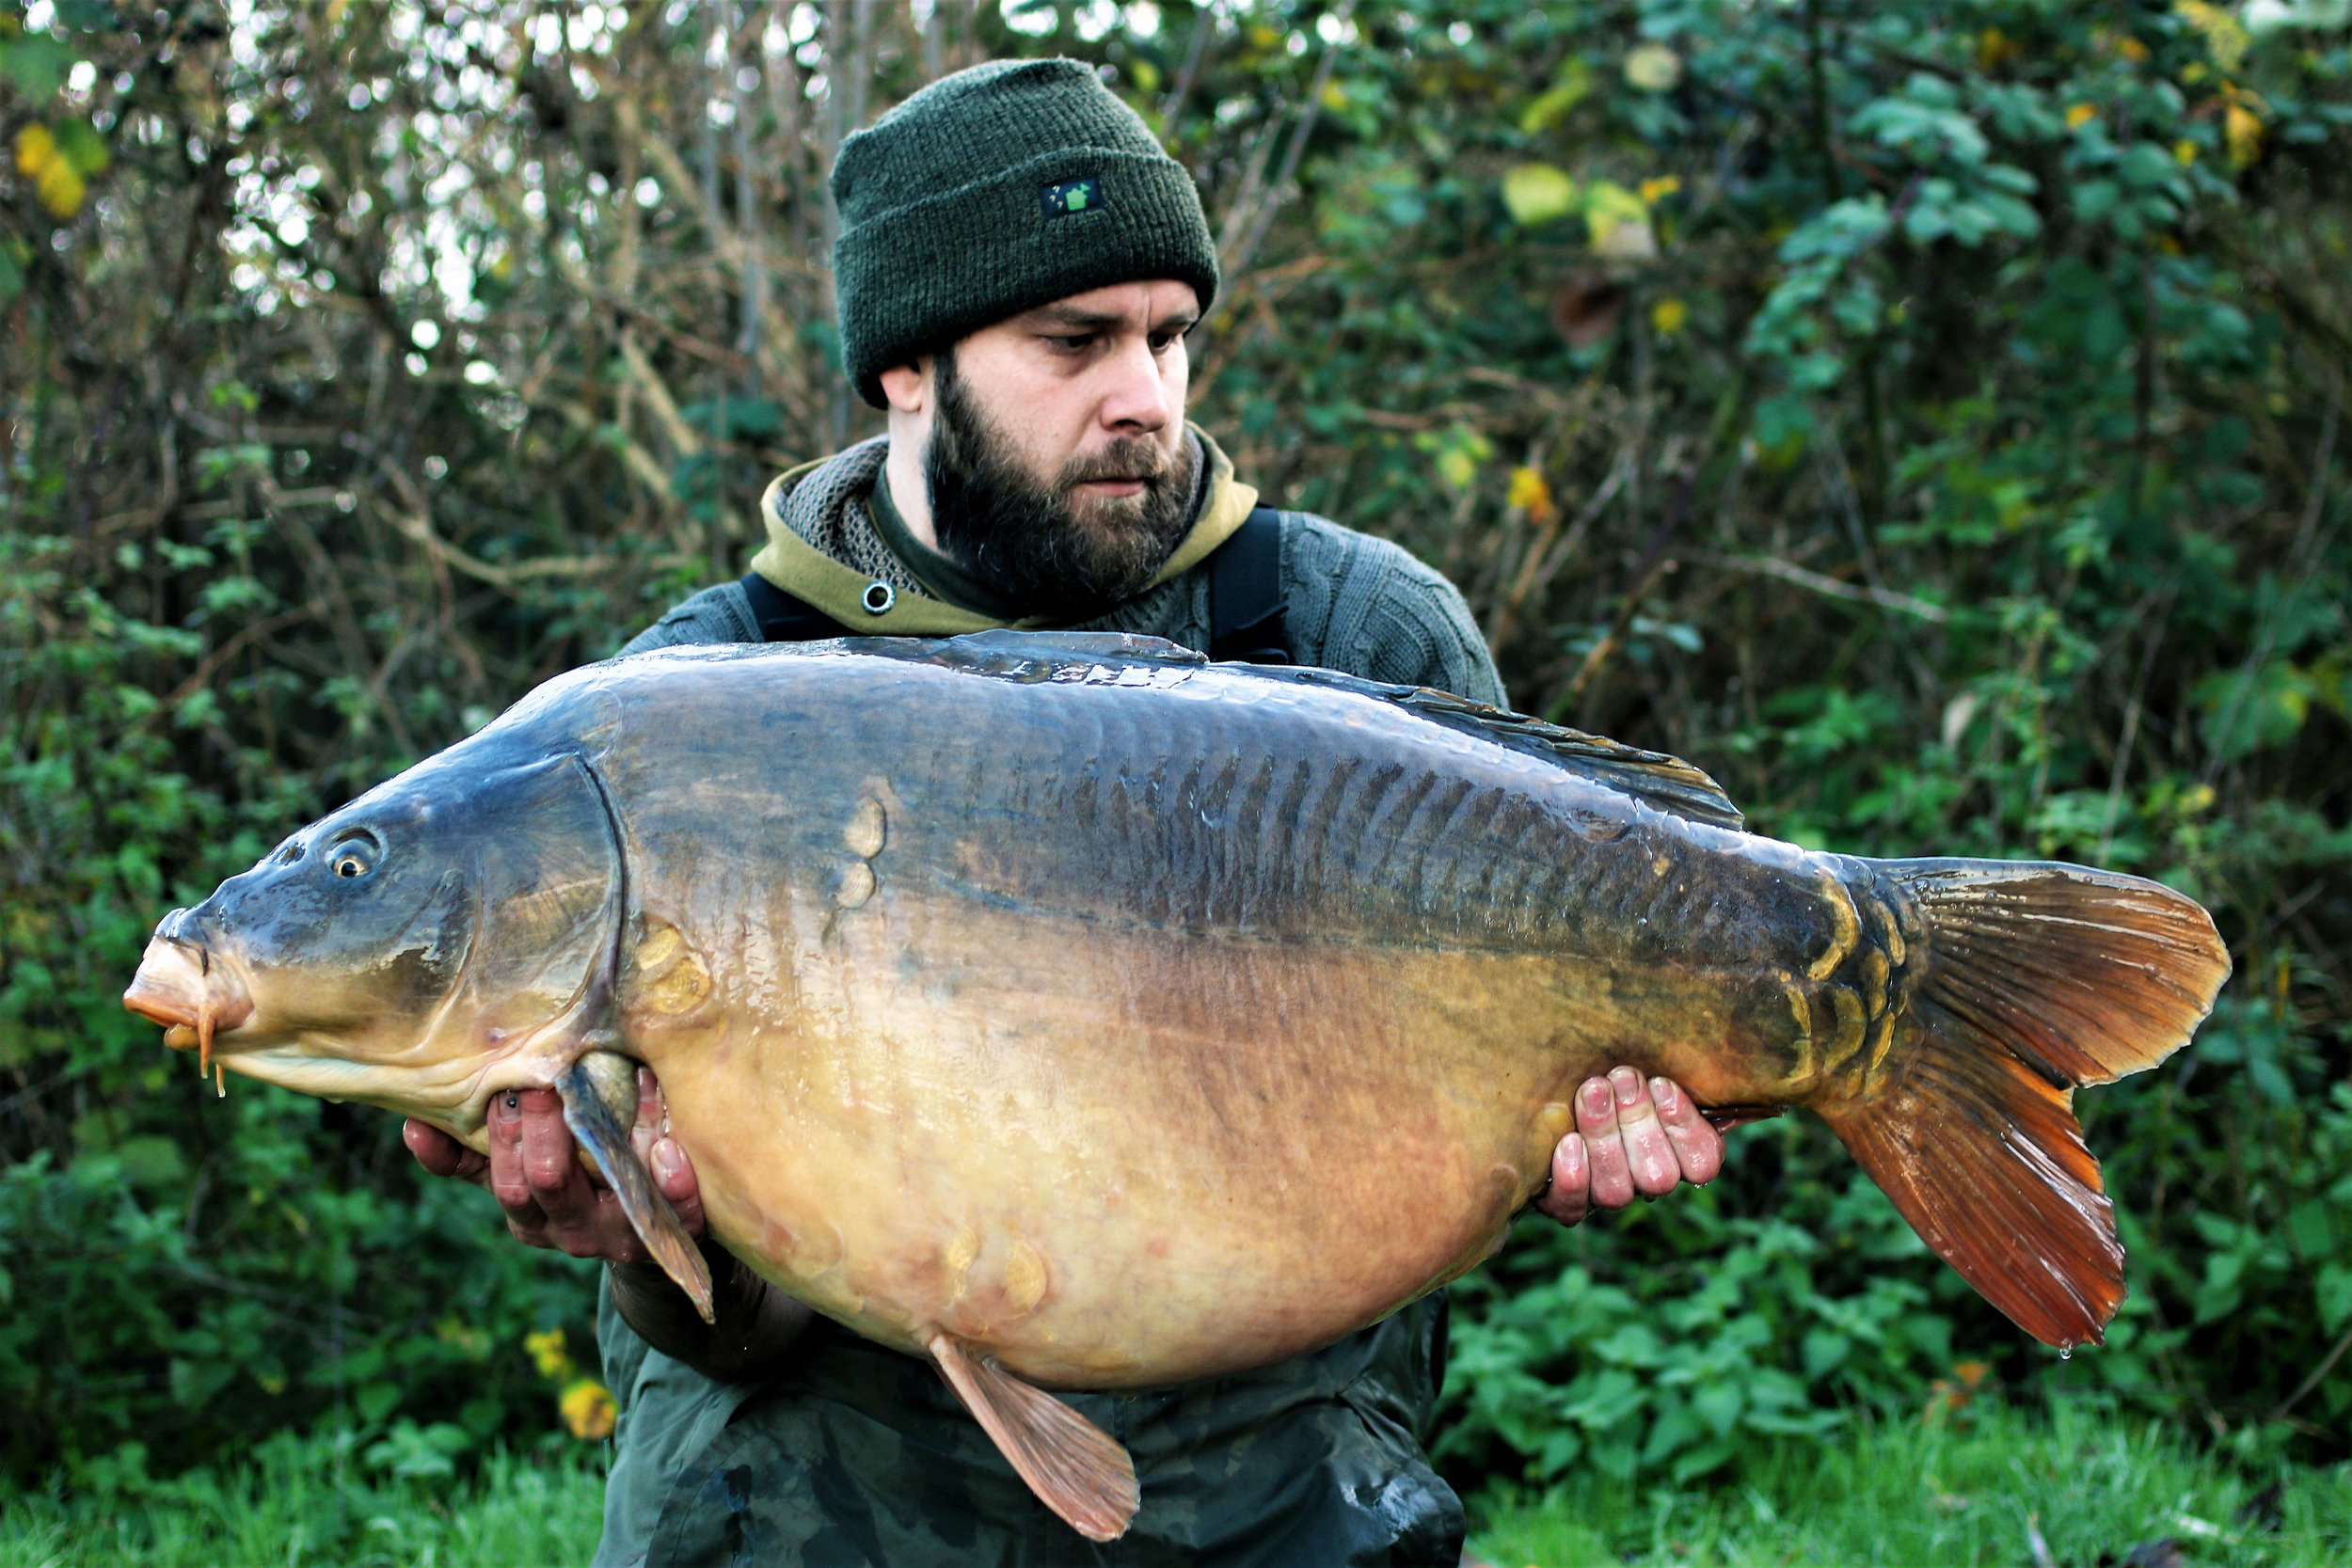 A fish known as Armageddon at a colossal 50lb 10oz